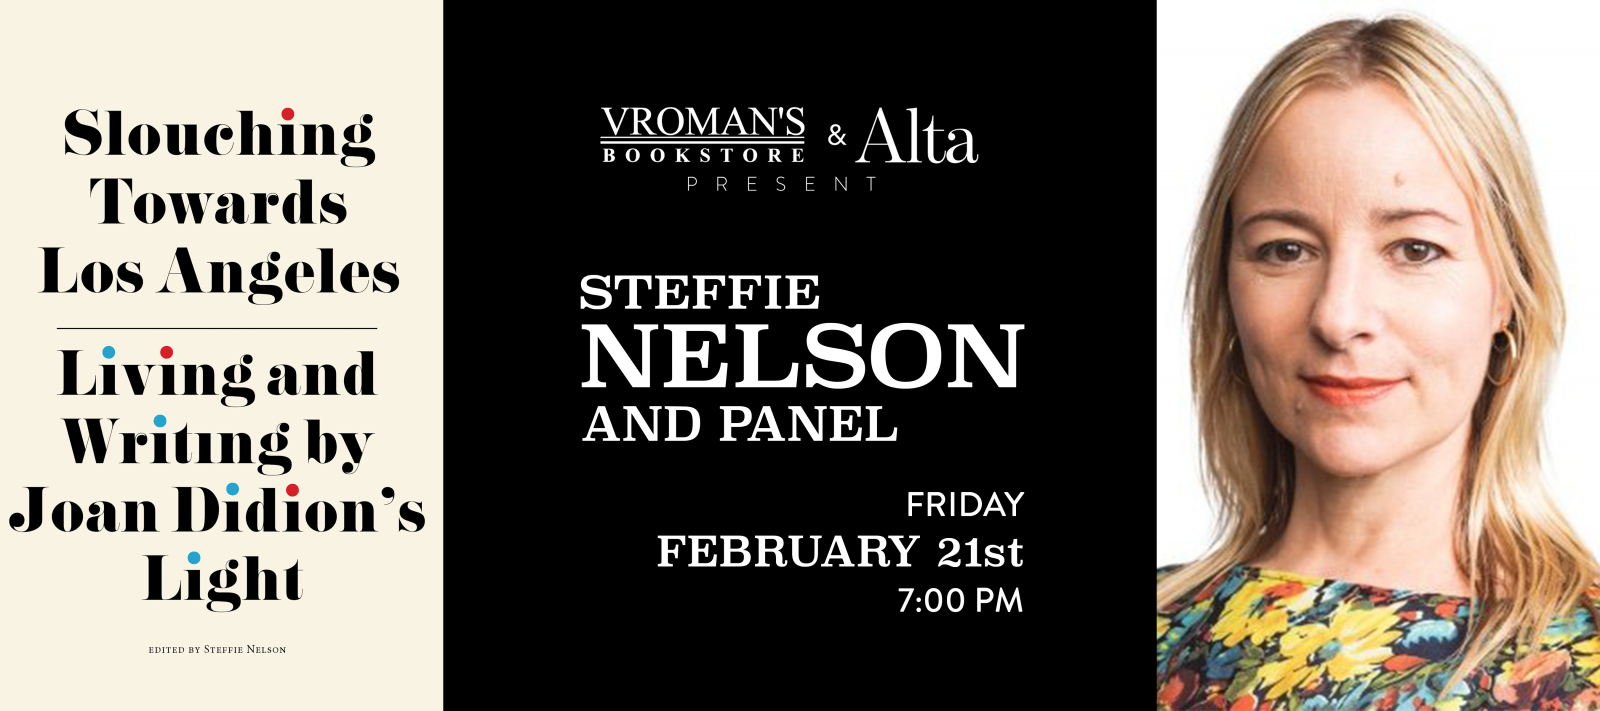 Steffie Nelson book signing on Friday, February 21, at 7pm